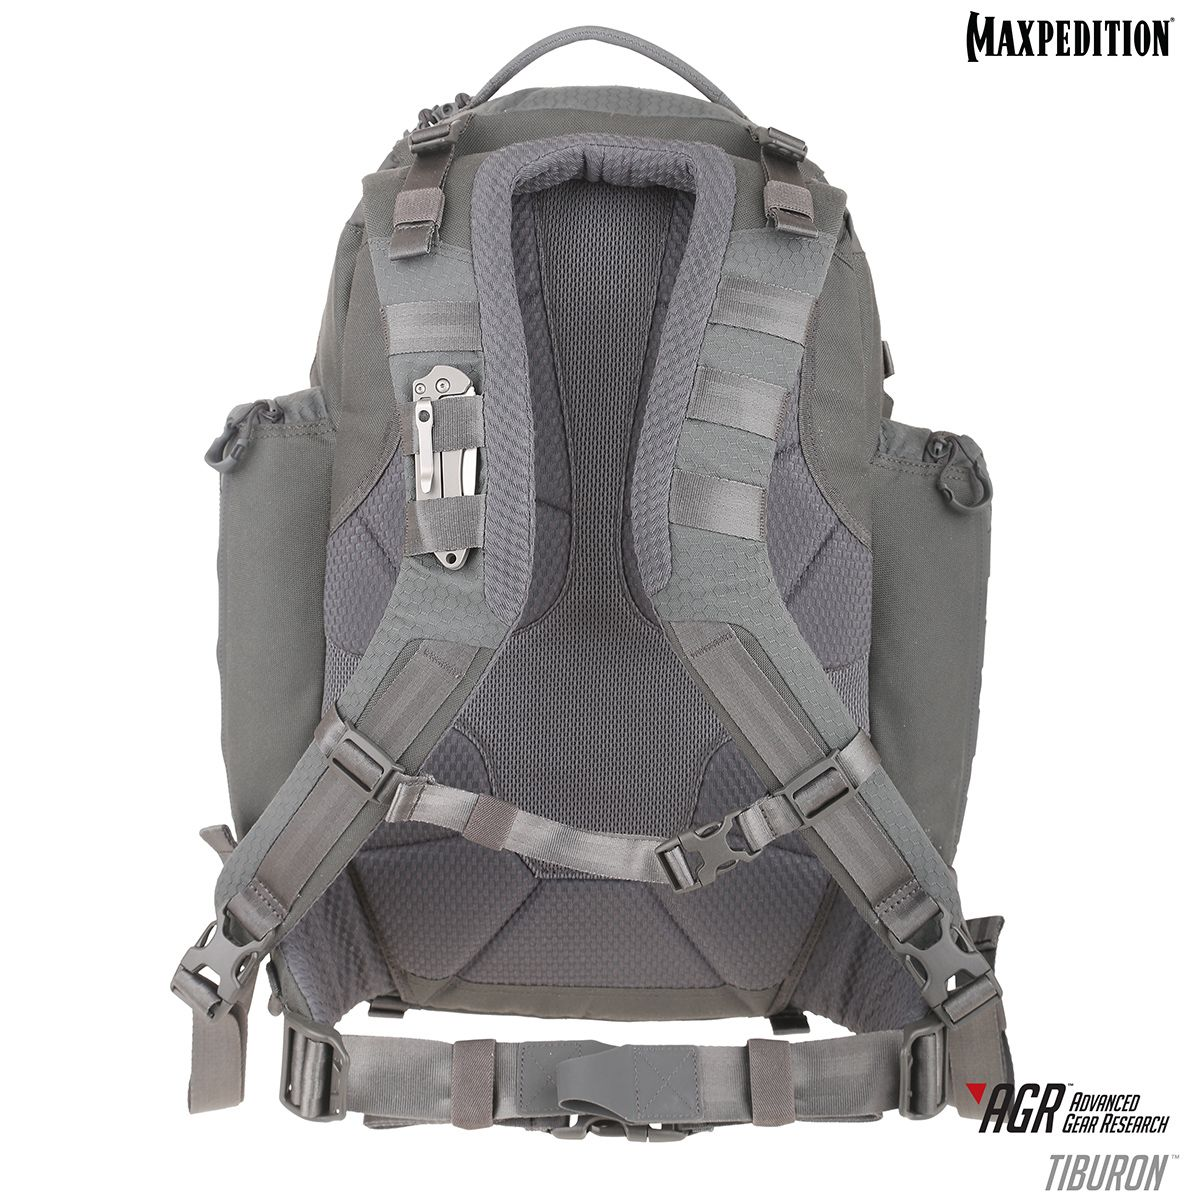 cb9d3a4aa2 The Tiburon Backpack features yoke-style, padded backpack straps that form  a U-shape in the middle for improved ergonomics.